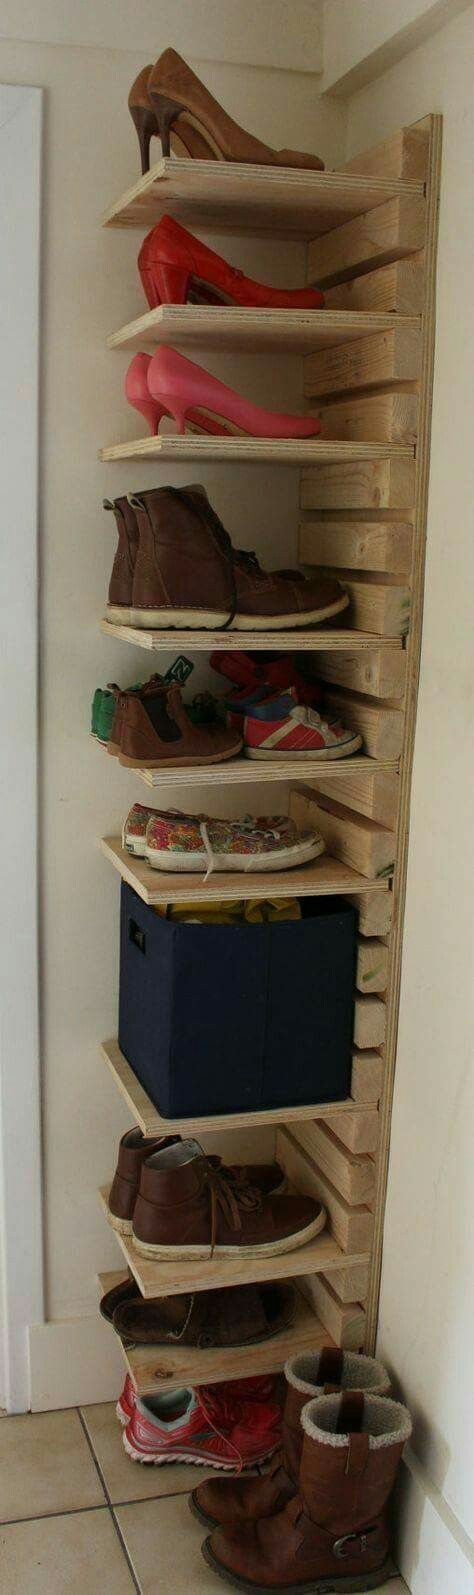 Great Vertical Shoe Storage Idea Or Books Bags Toyys